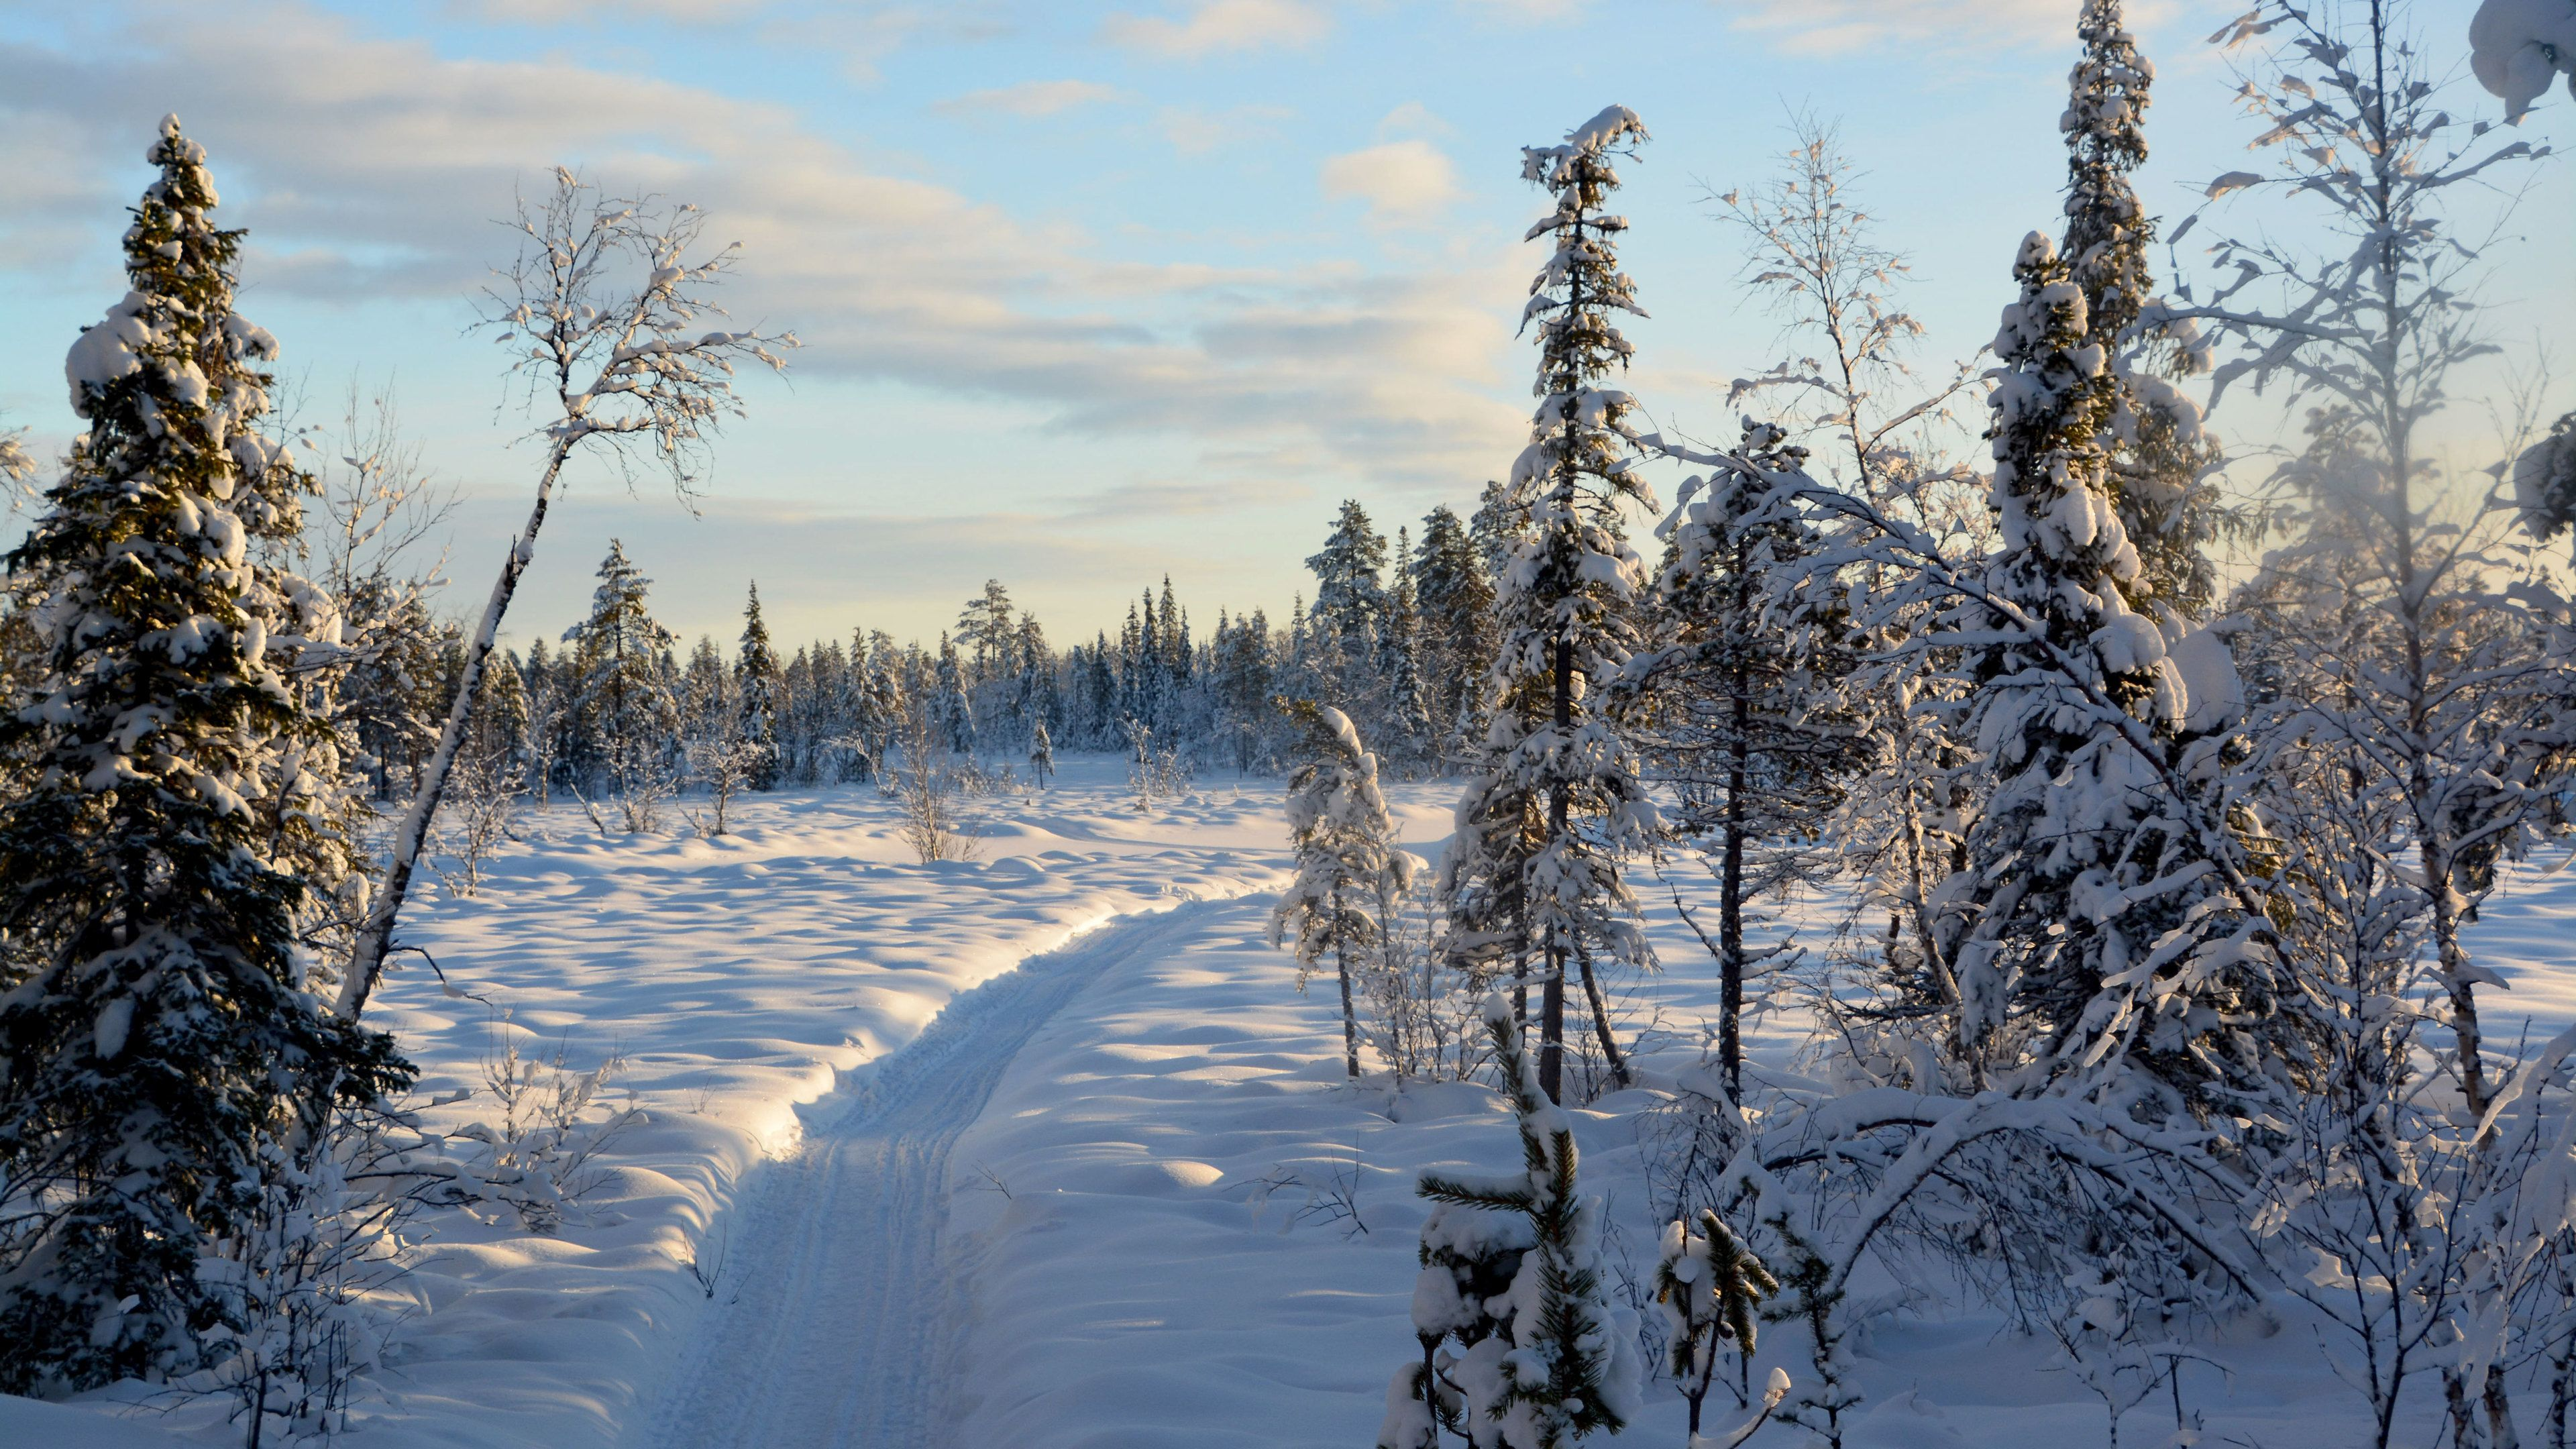 Path through the snowy forest in Stockholm